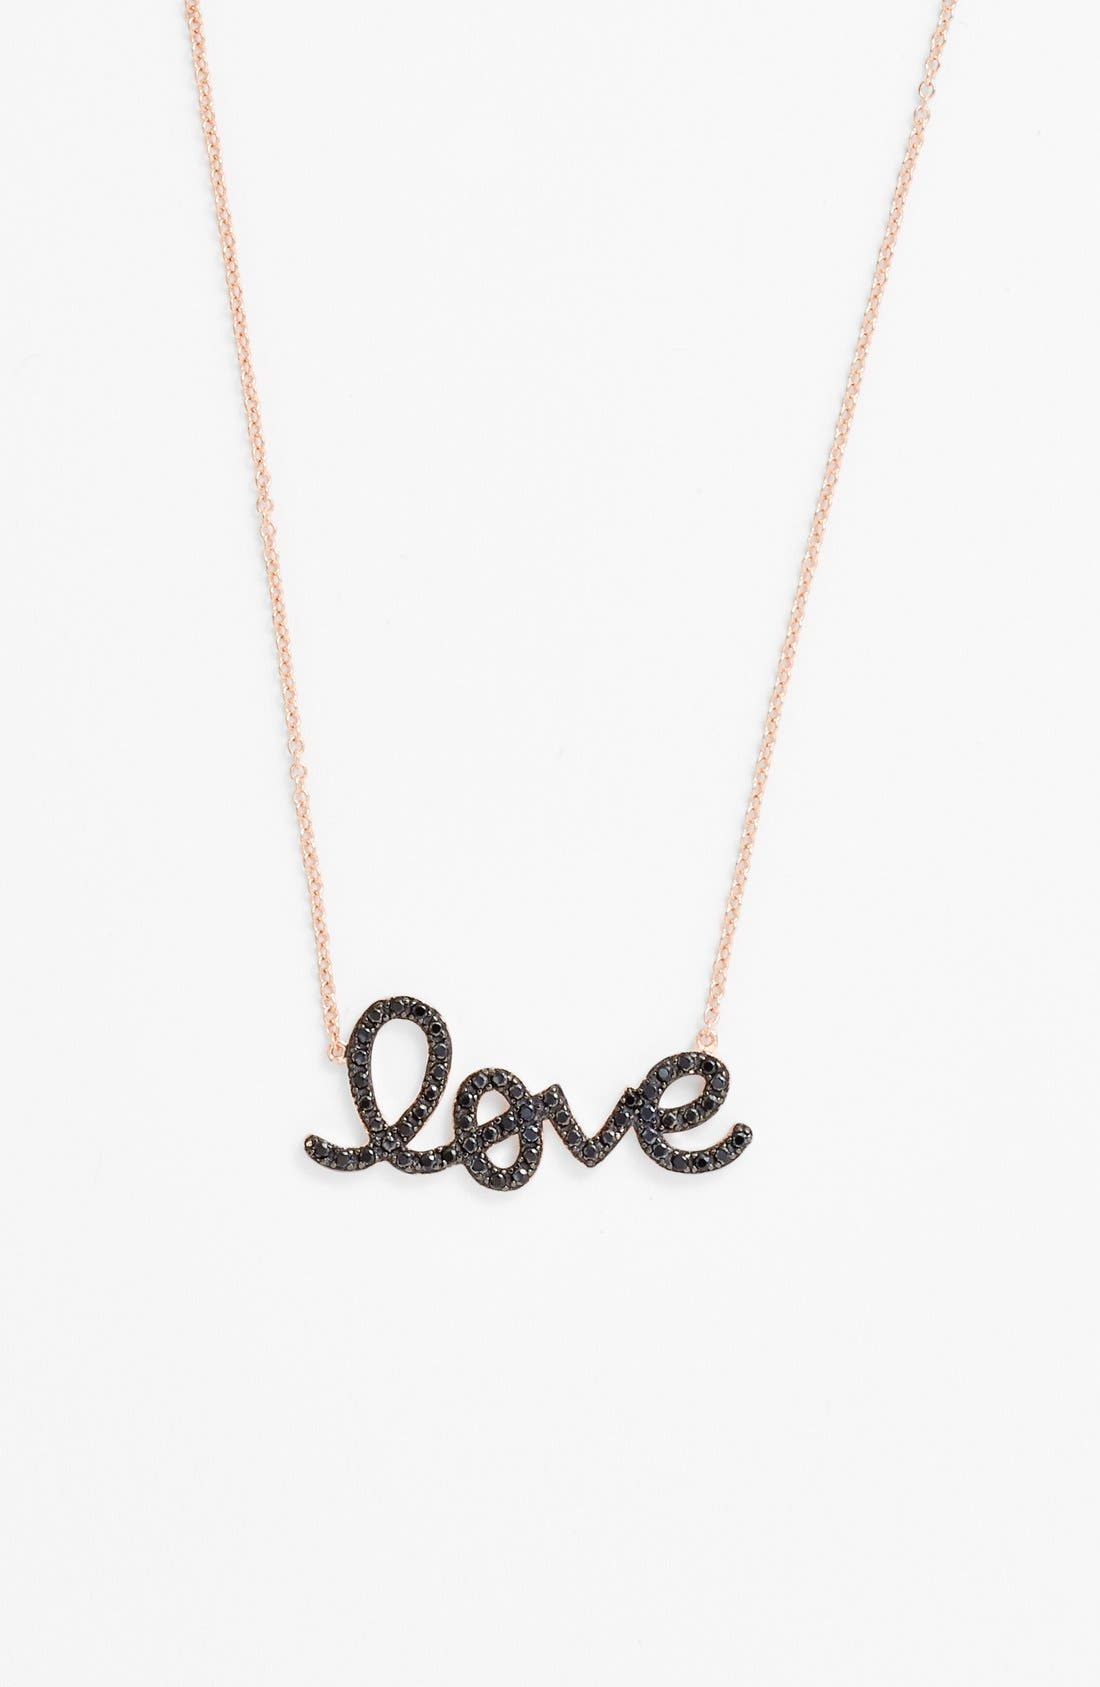 Main Image - Sugar Bean Jewelry 'Love' Pendant Necklace